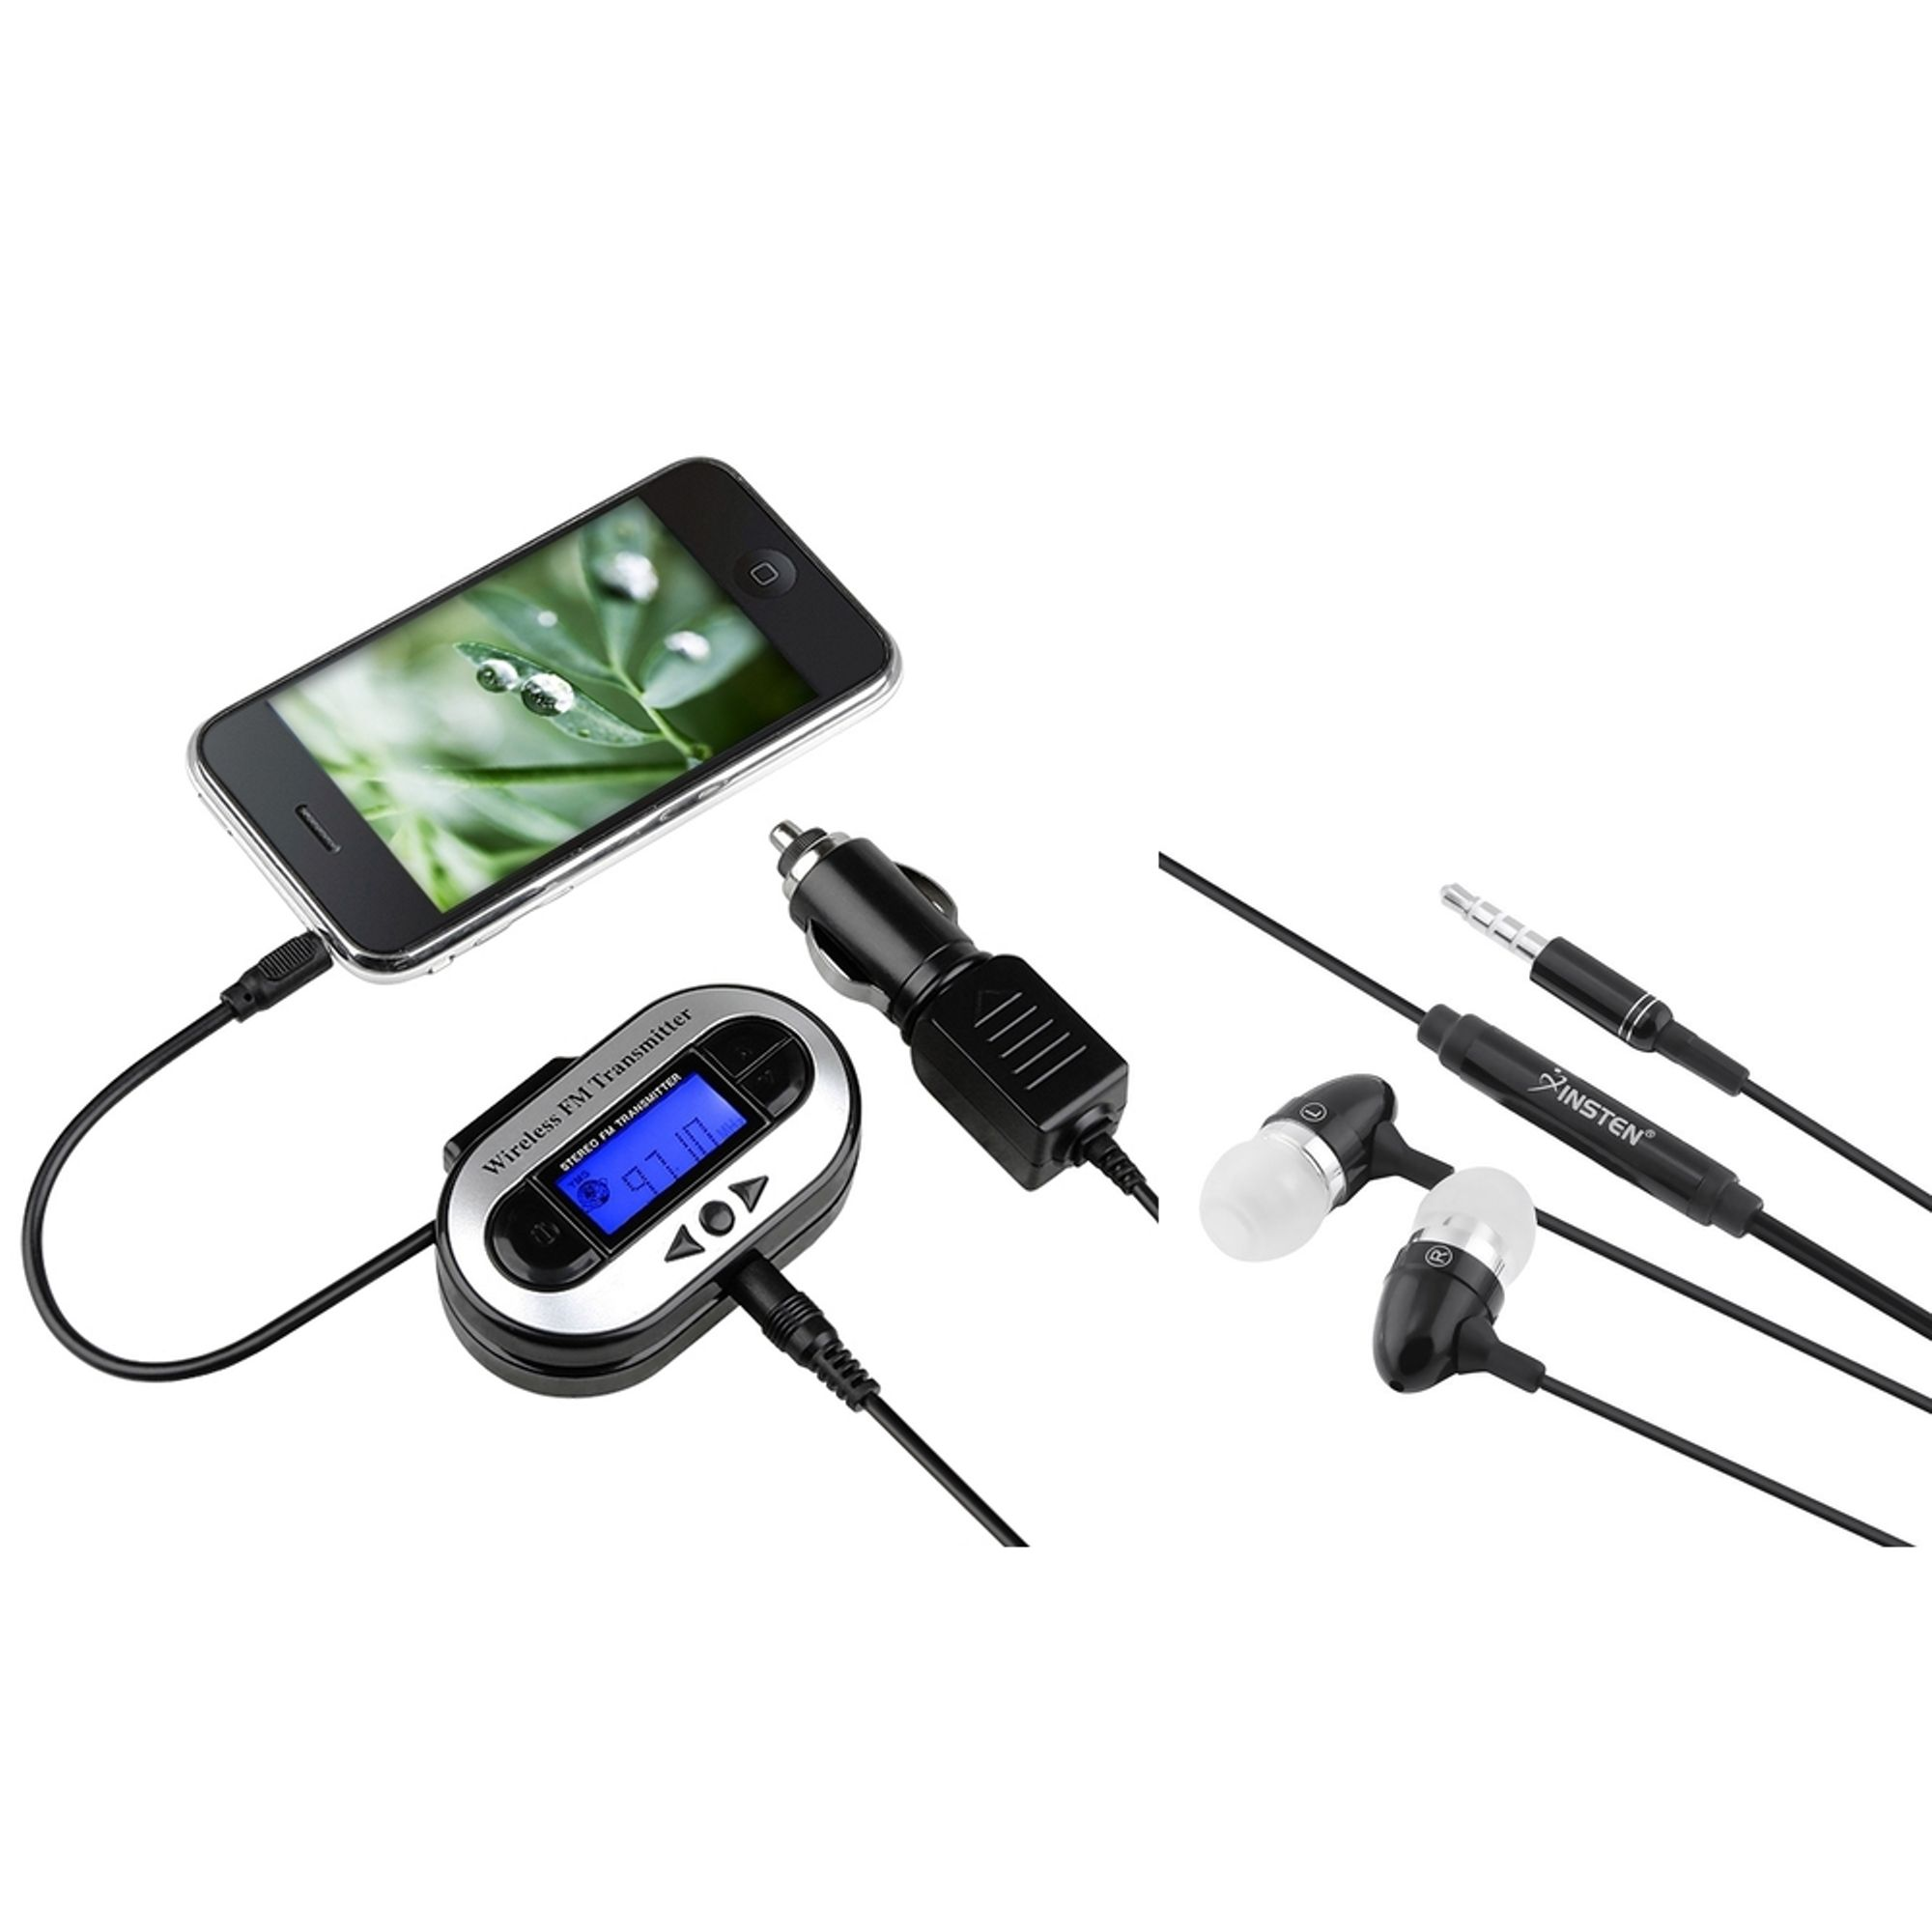 Insten FM Transmitter Car Adapter + Handsfree Headset For iPhone 6 6S Plus SE 5 5S 5C 4S / iPod Nano Touch 4th 5th 6th